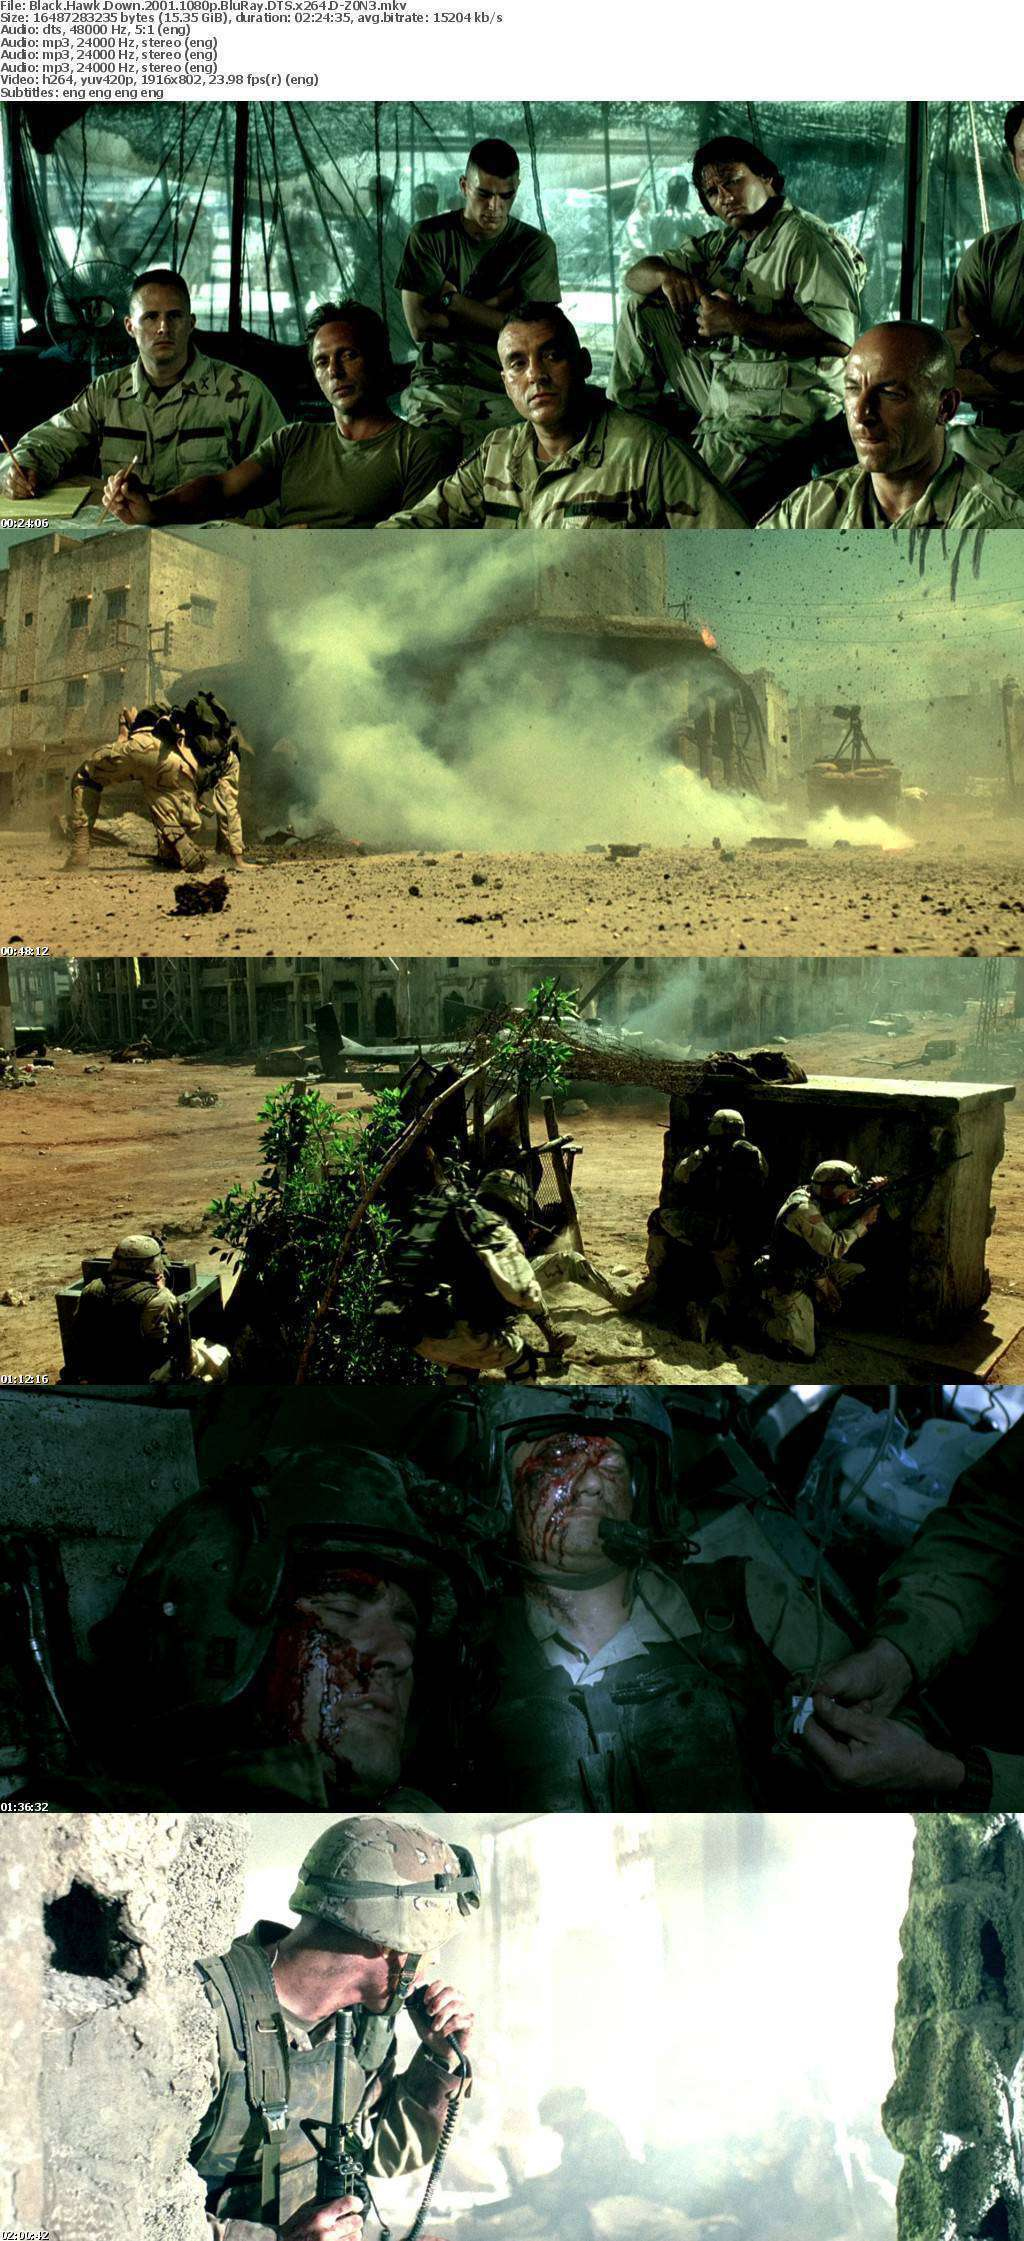 Black Hawk Down Crash Scene Black Hawk Down 2001 1080p